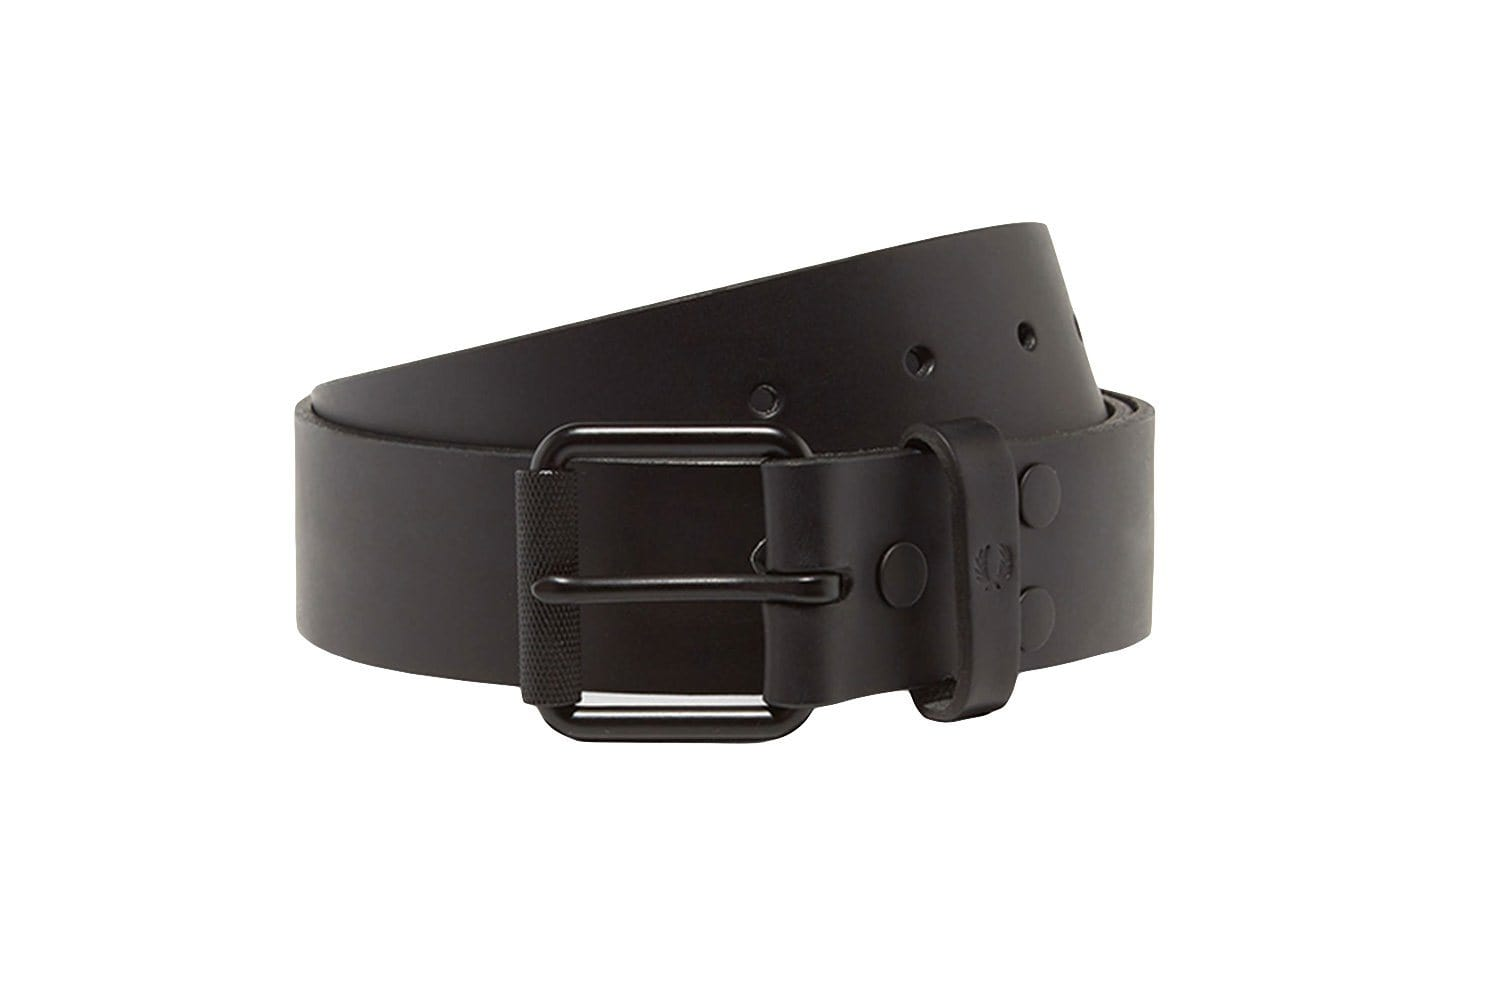 RIVET LEATHER BELT - BT4432 BELTS FRED PERRY